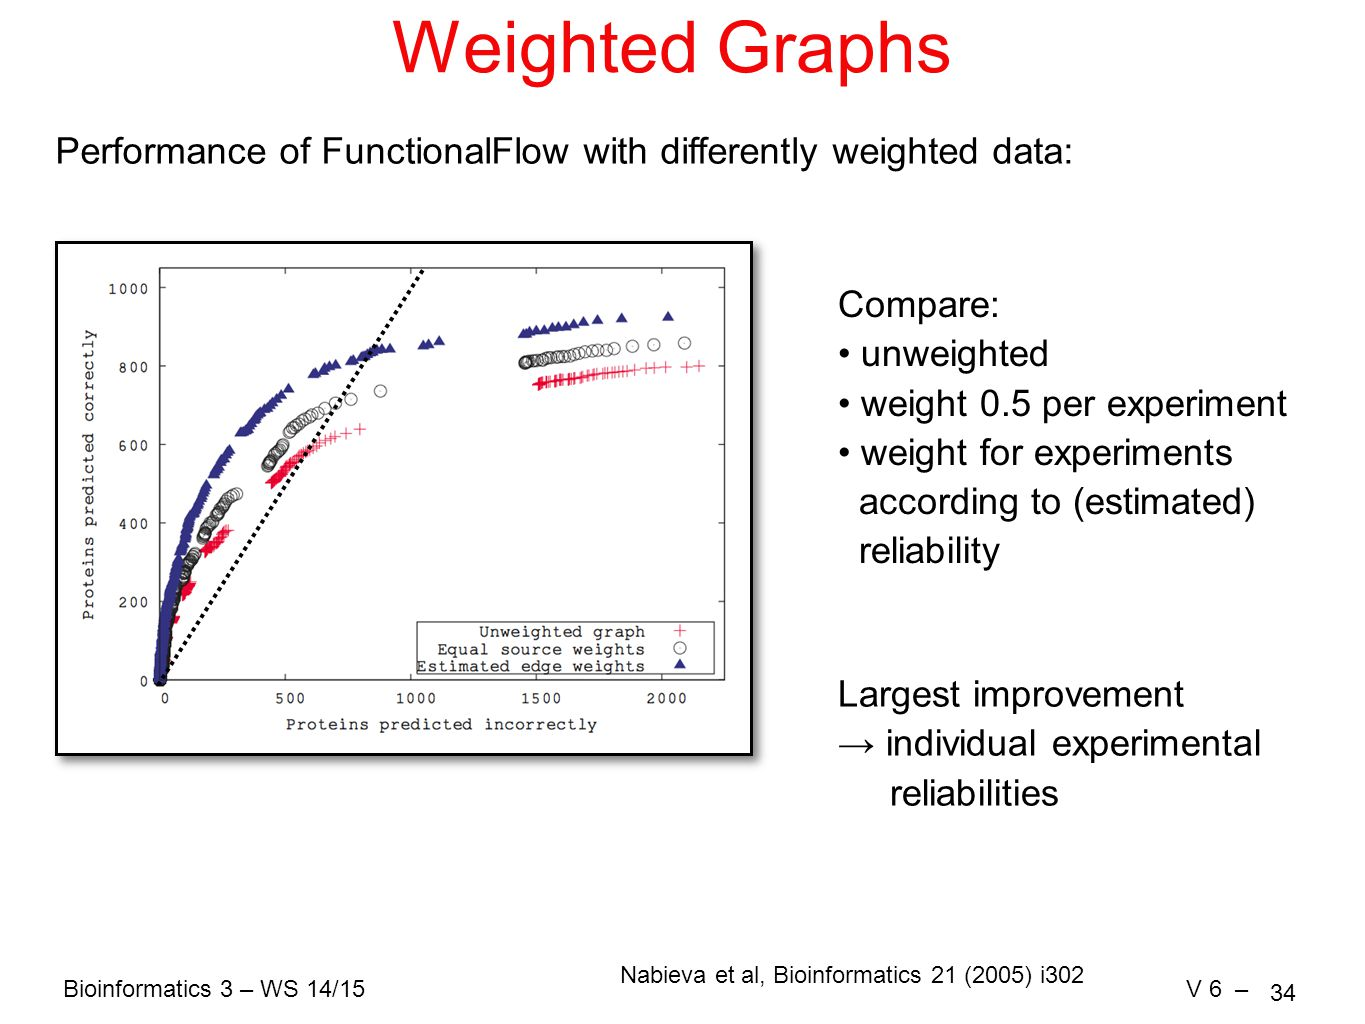 Bioinformatics 3 – WS 14/15V 6 – 34 Weighted Graphs Compare: unweighted weight 0.5 per experiment weight for experiments according to (estimated) reliability Largest improvement → individual experimental reliabilities Performance of FunctionalFlow with differently weighted data: Nabieva et al, Bioinformatics 21 (2005) i302